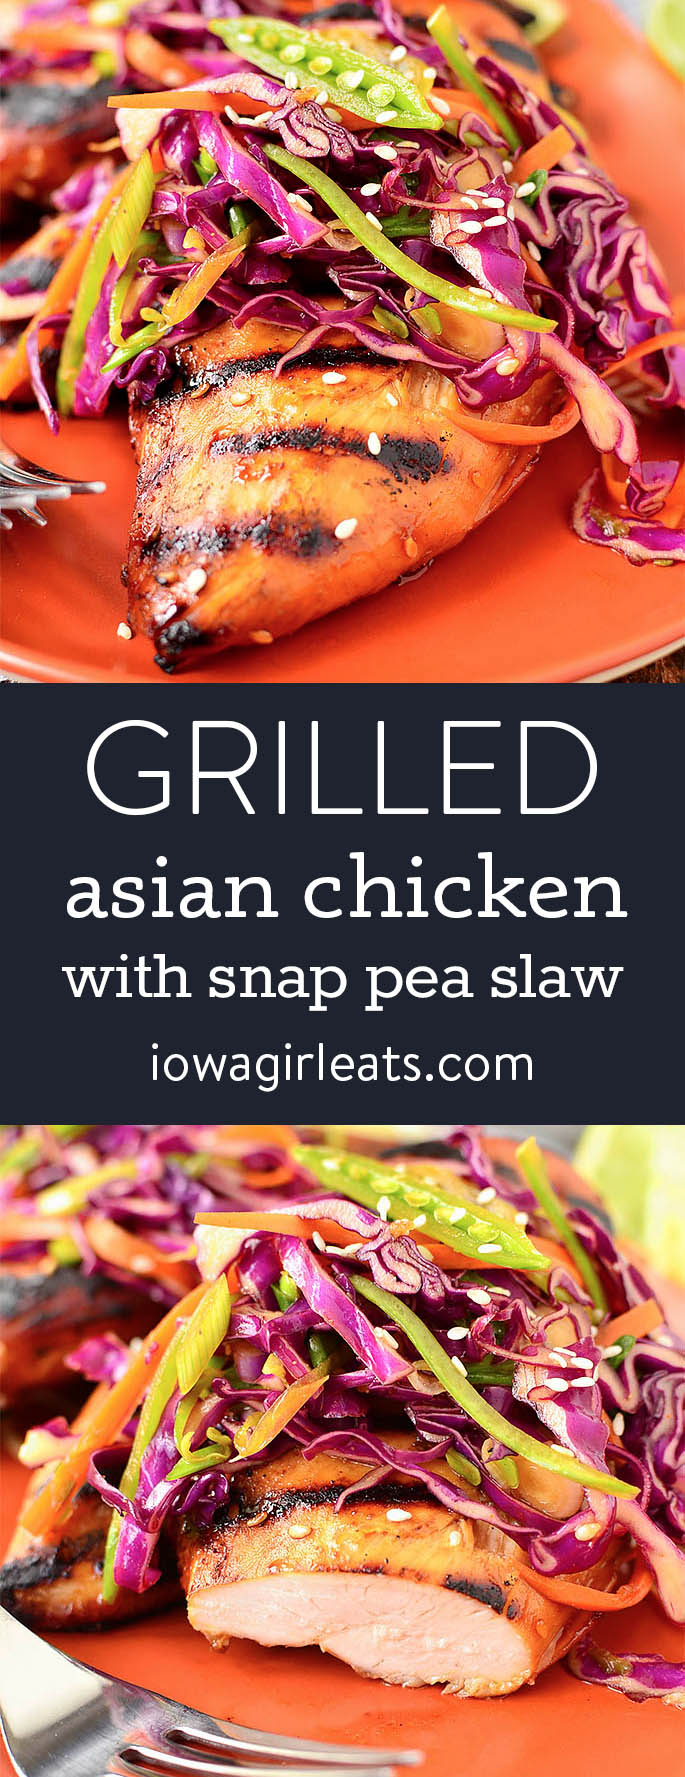 Photo collage of grilled asian chicken